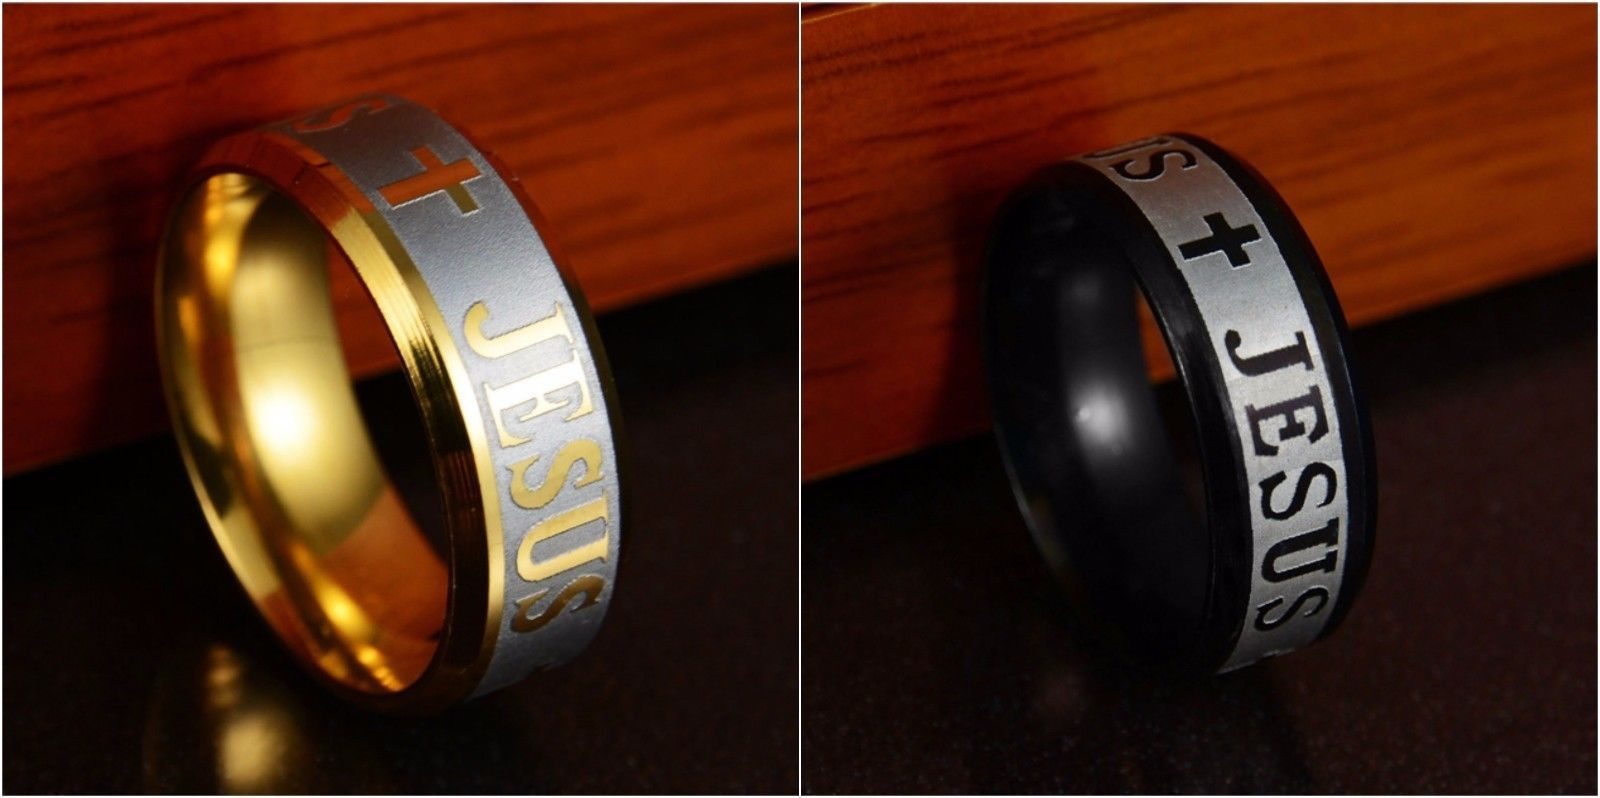 Jesus Christian Cross Prayer Band Ring Stainless Steel Men's Fashion Jewelry